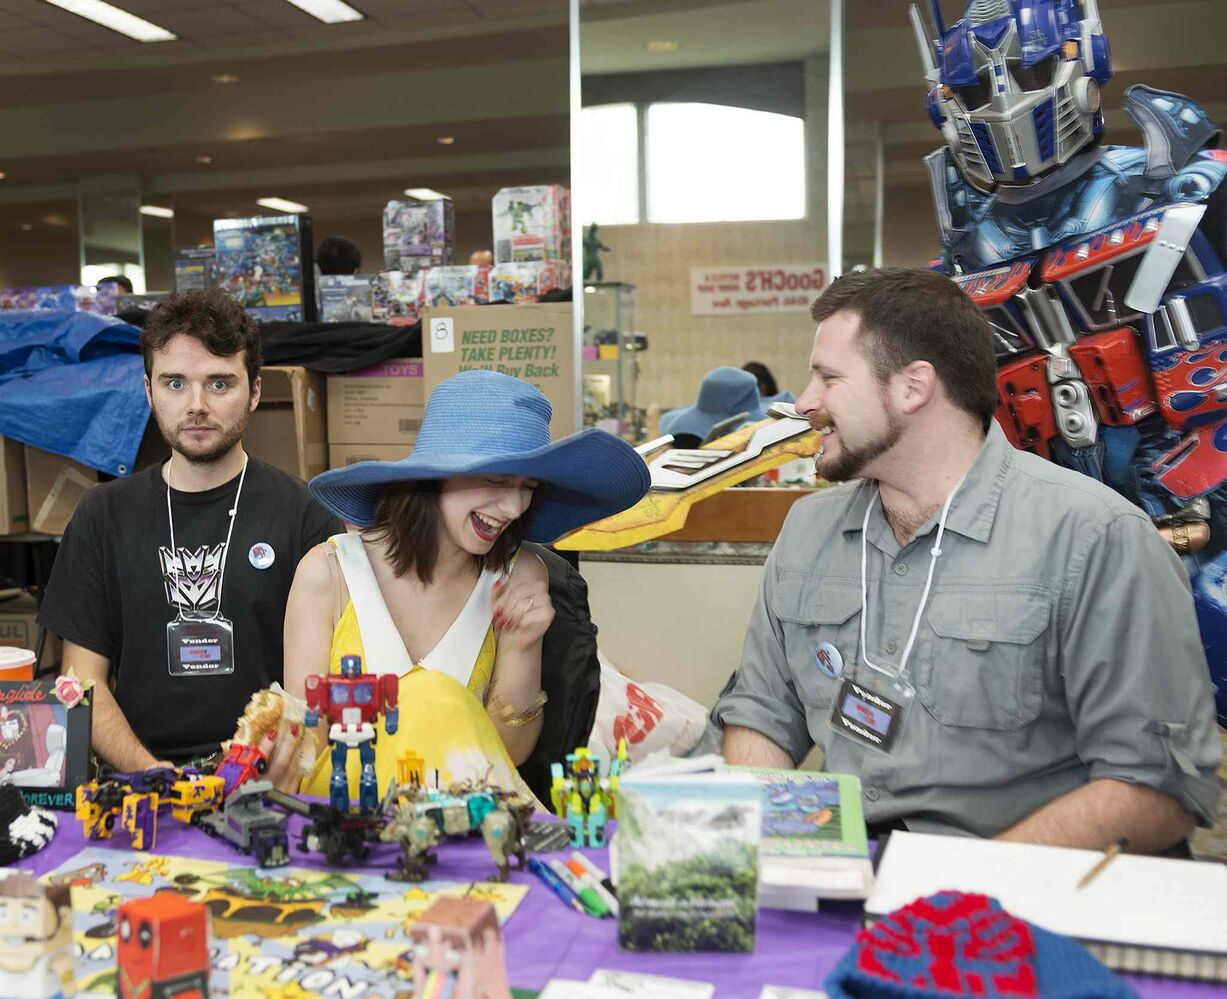 Optimus Prime photobombs William O'Donnell, Stacie Gagnon and Bart Rucinski at their Yak and Shadow vendor at Saturday's Transformers convention in the Clarion Hotel. (Sarah Taylor / Winnipeg Free Press)